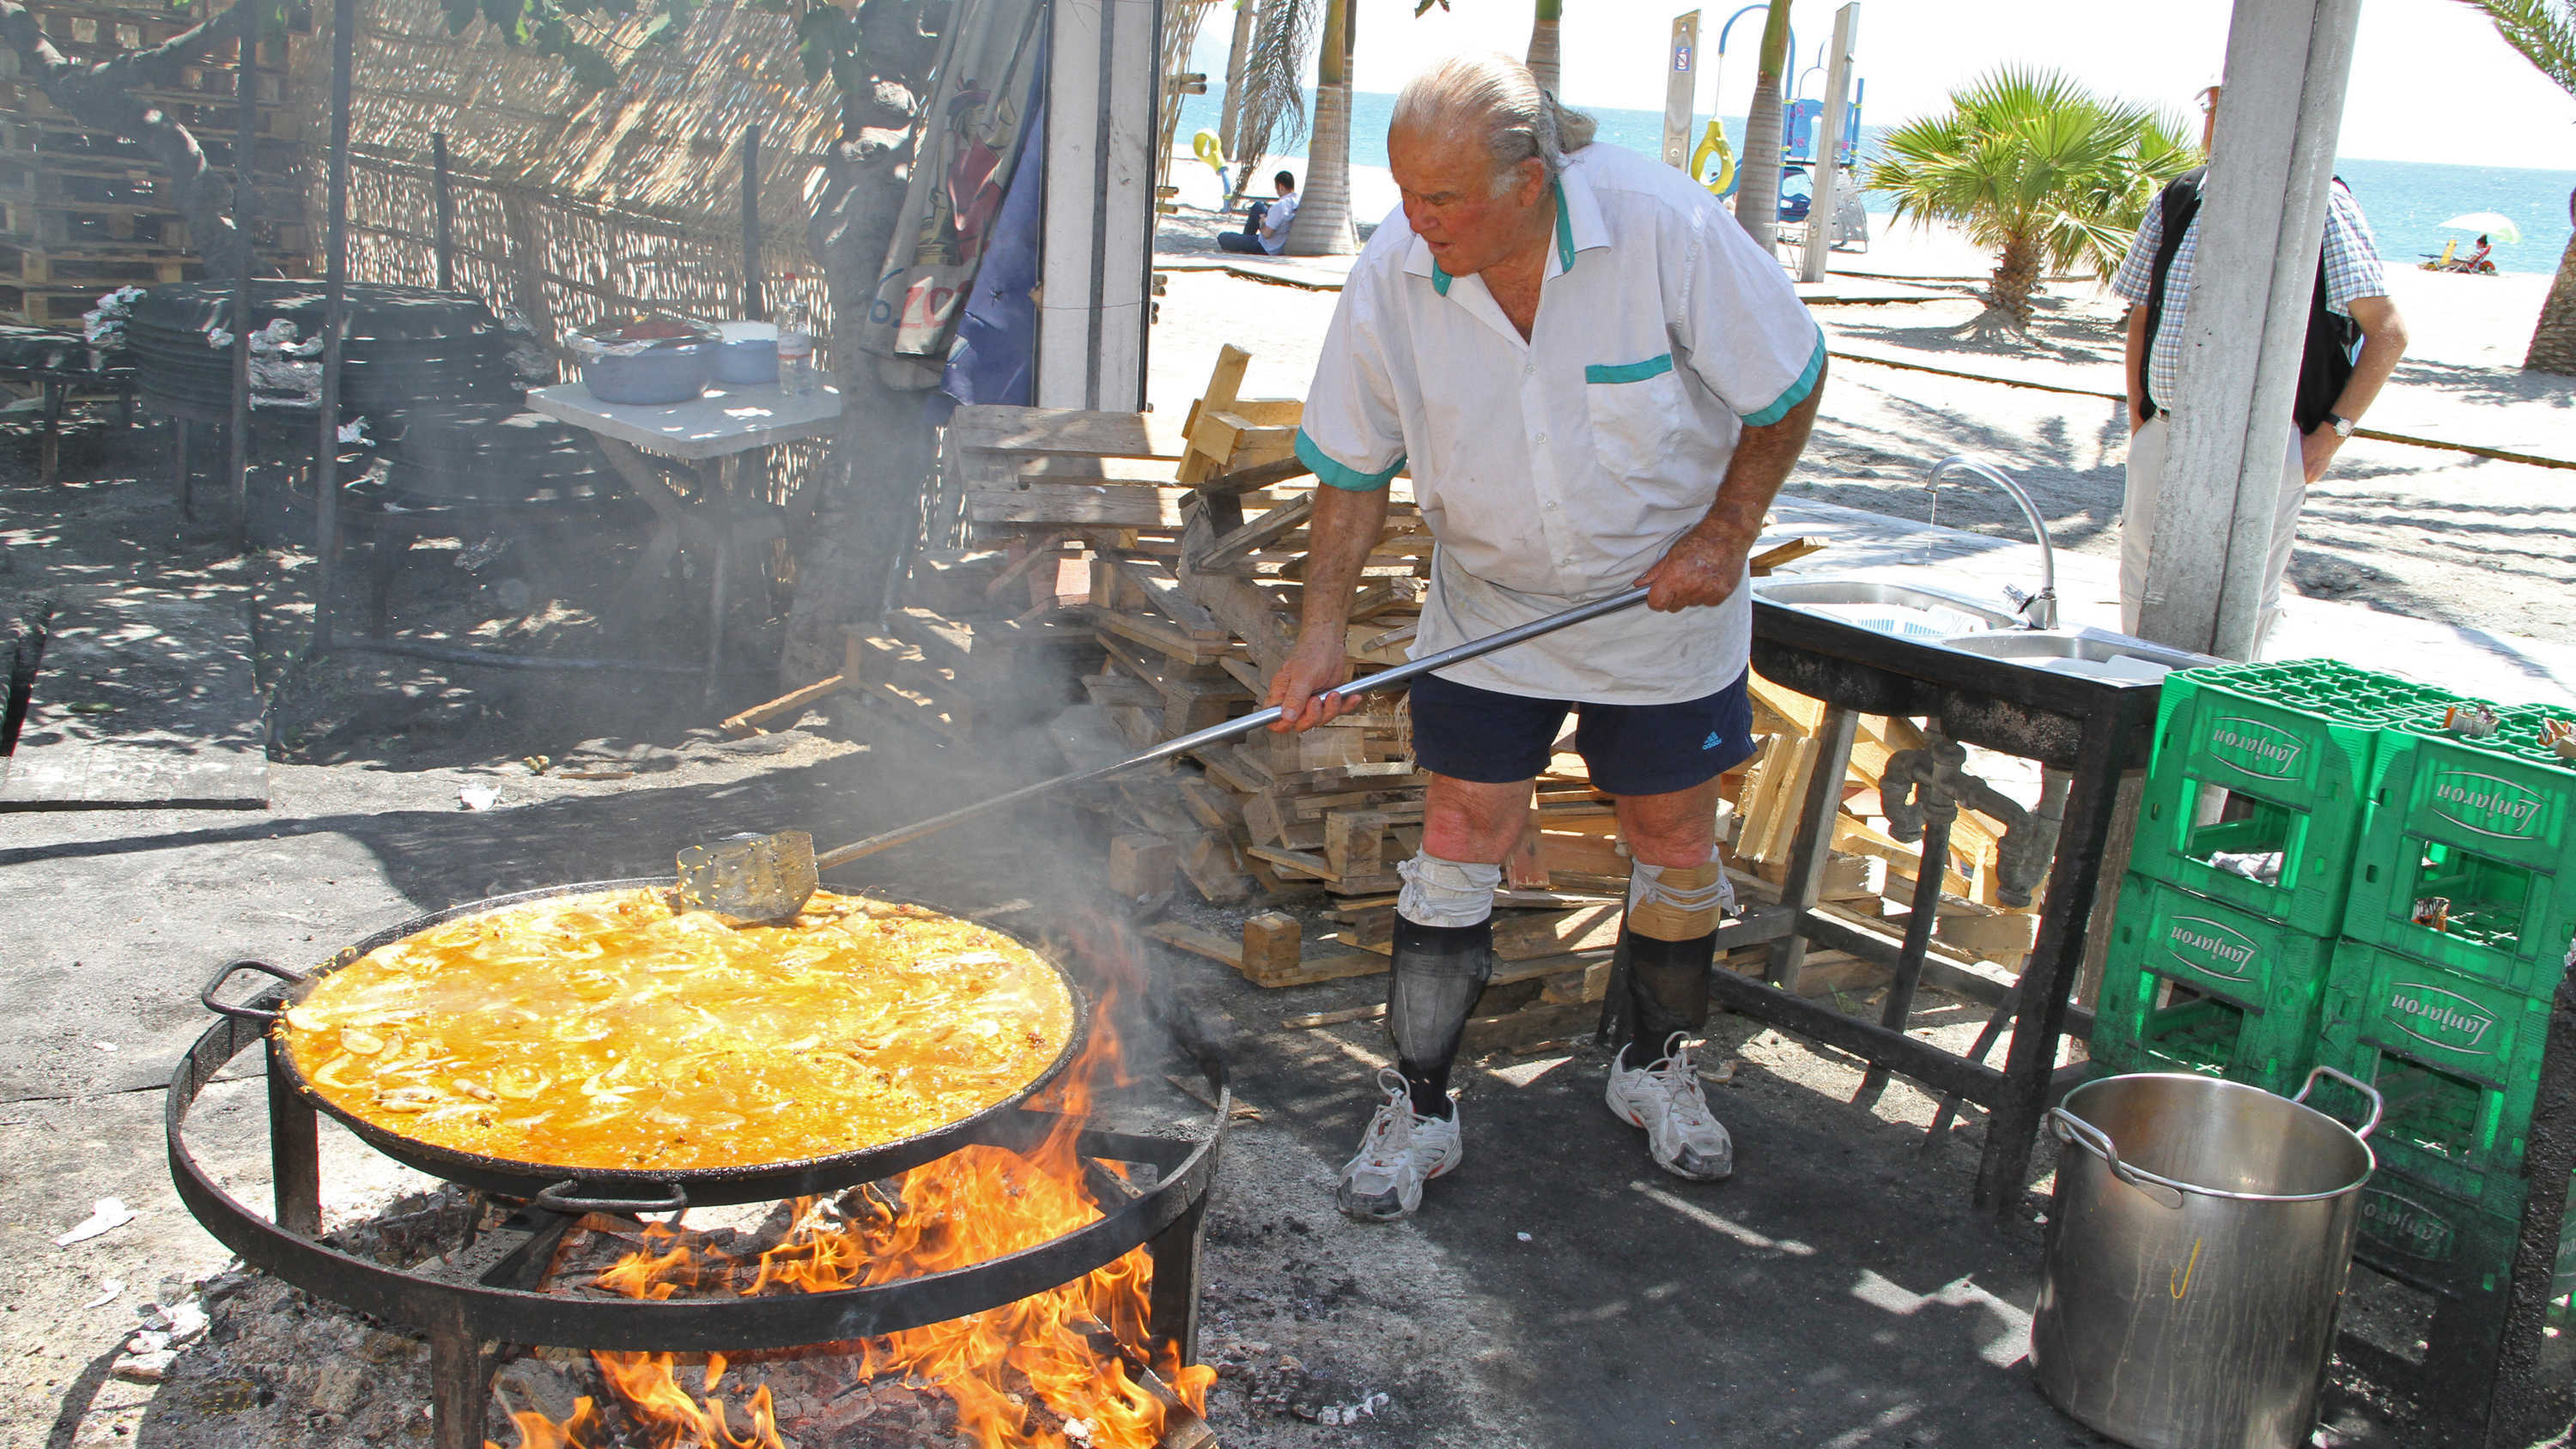 Cooking paella in Spain